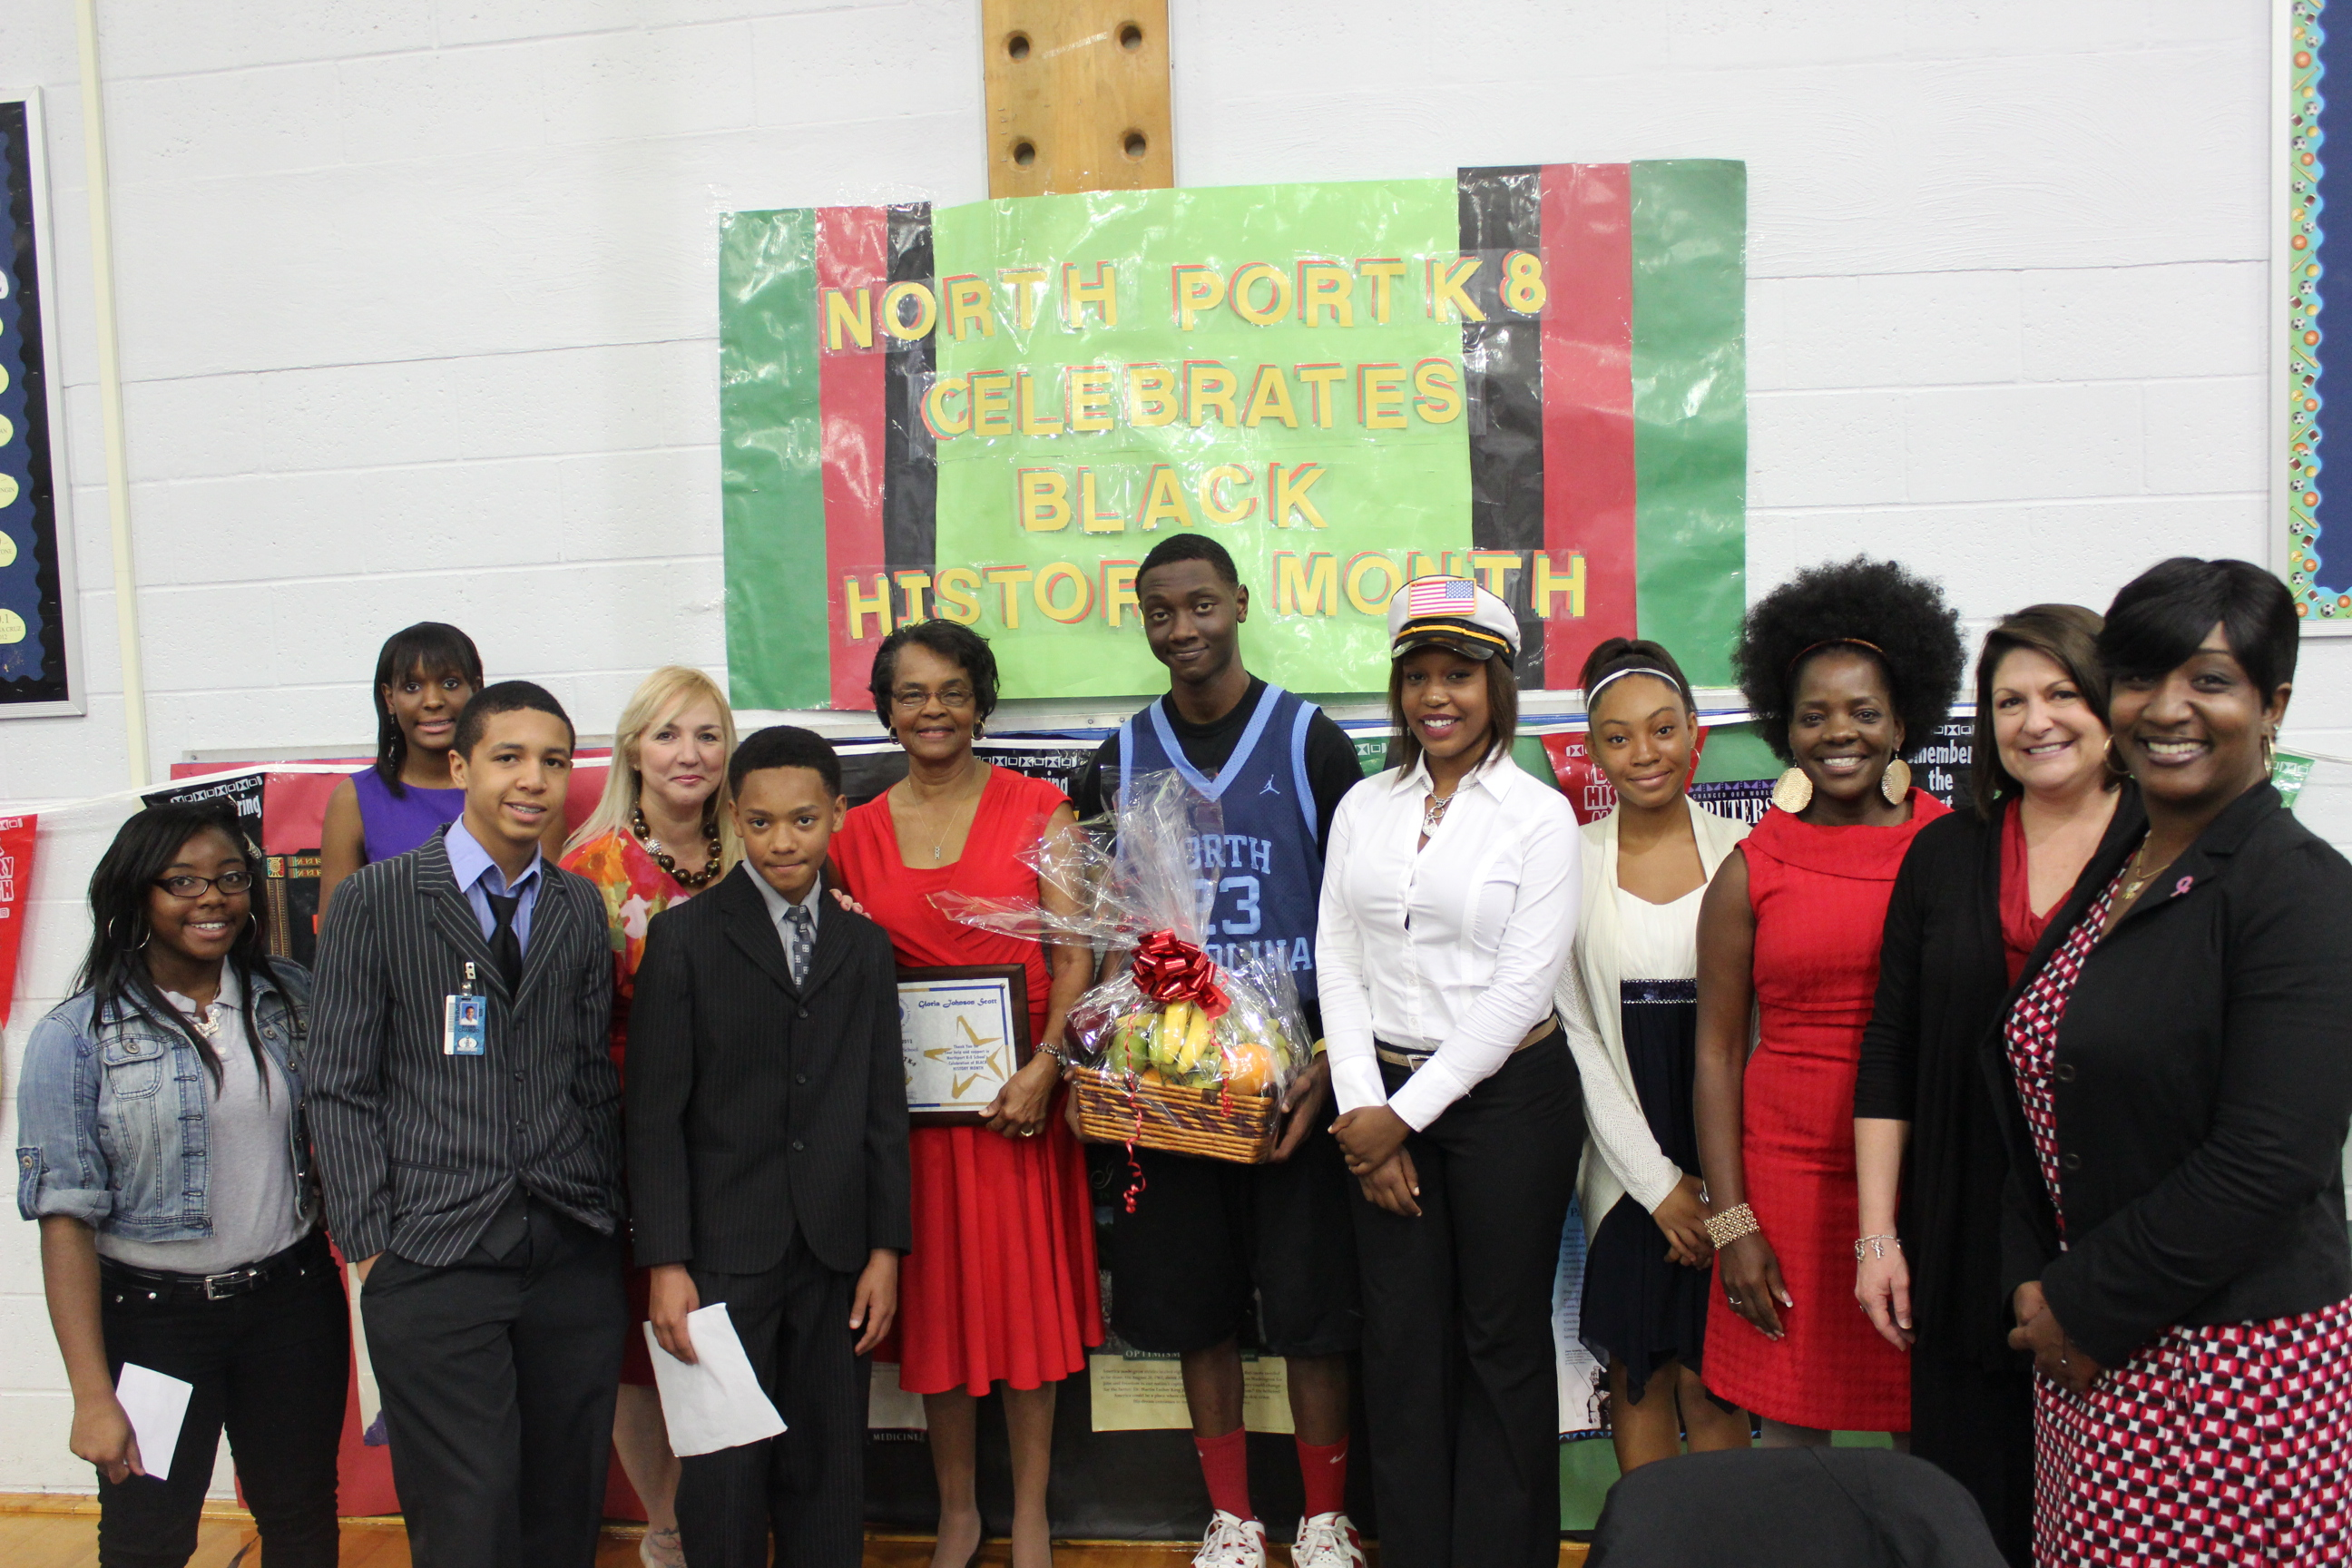 Northport K8 celebrates Black History Month